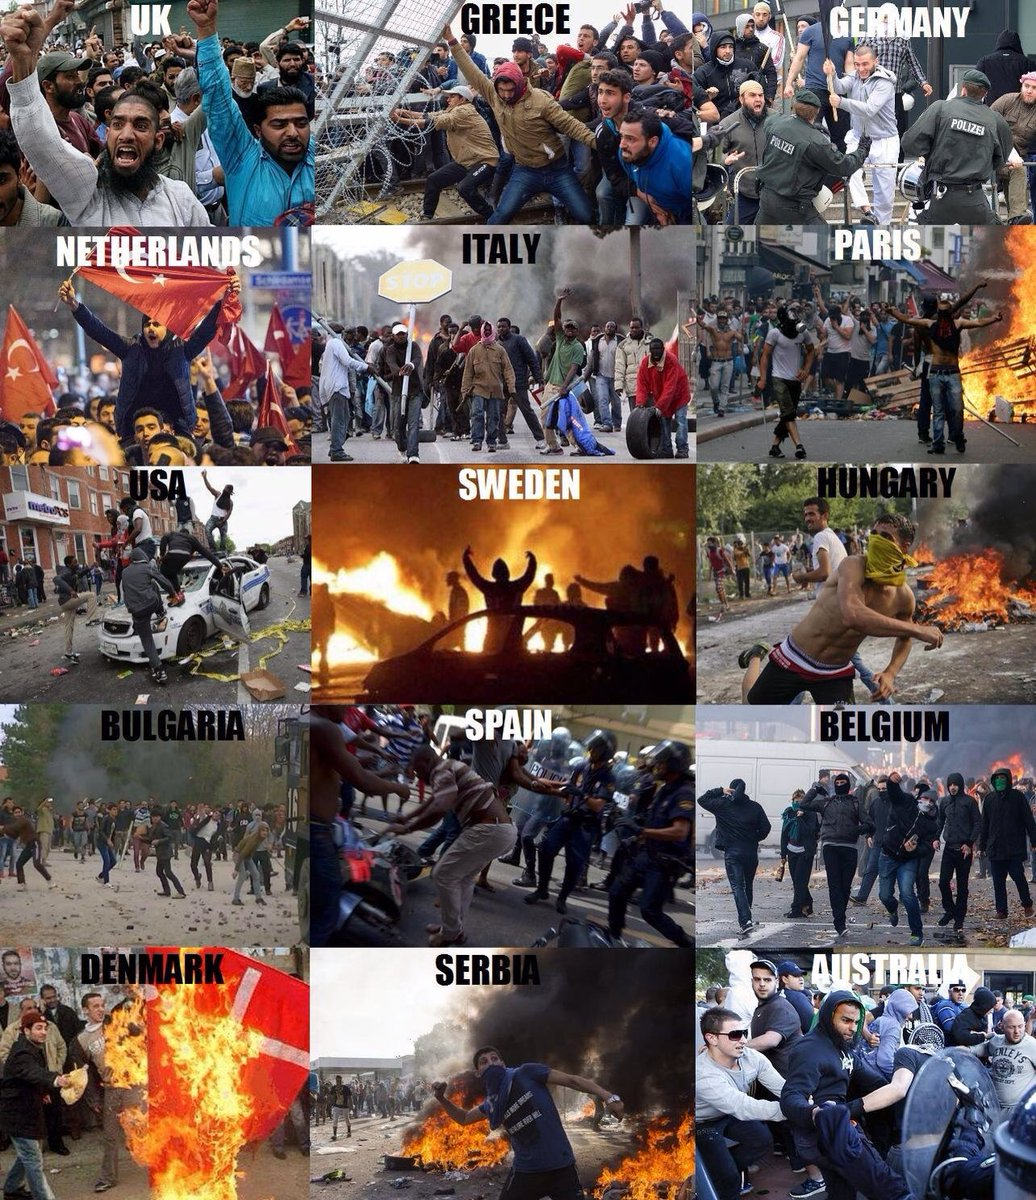 """Muslim Immigration and the Future of Europe: Where's the Democracy? –  Zeepertje.com – Facts Fun & News on ISLAM, """"The religion of peace"""""""